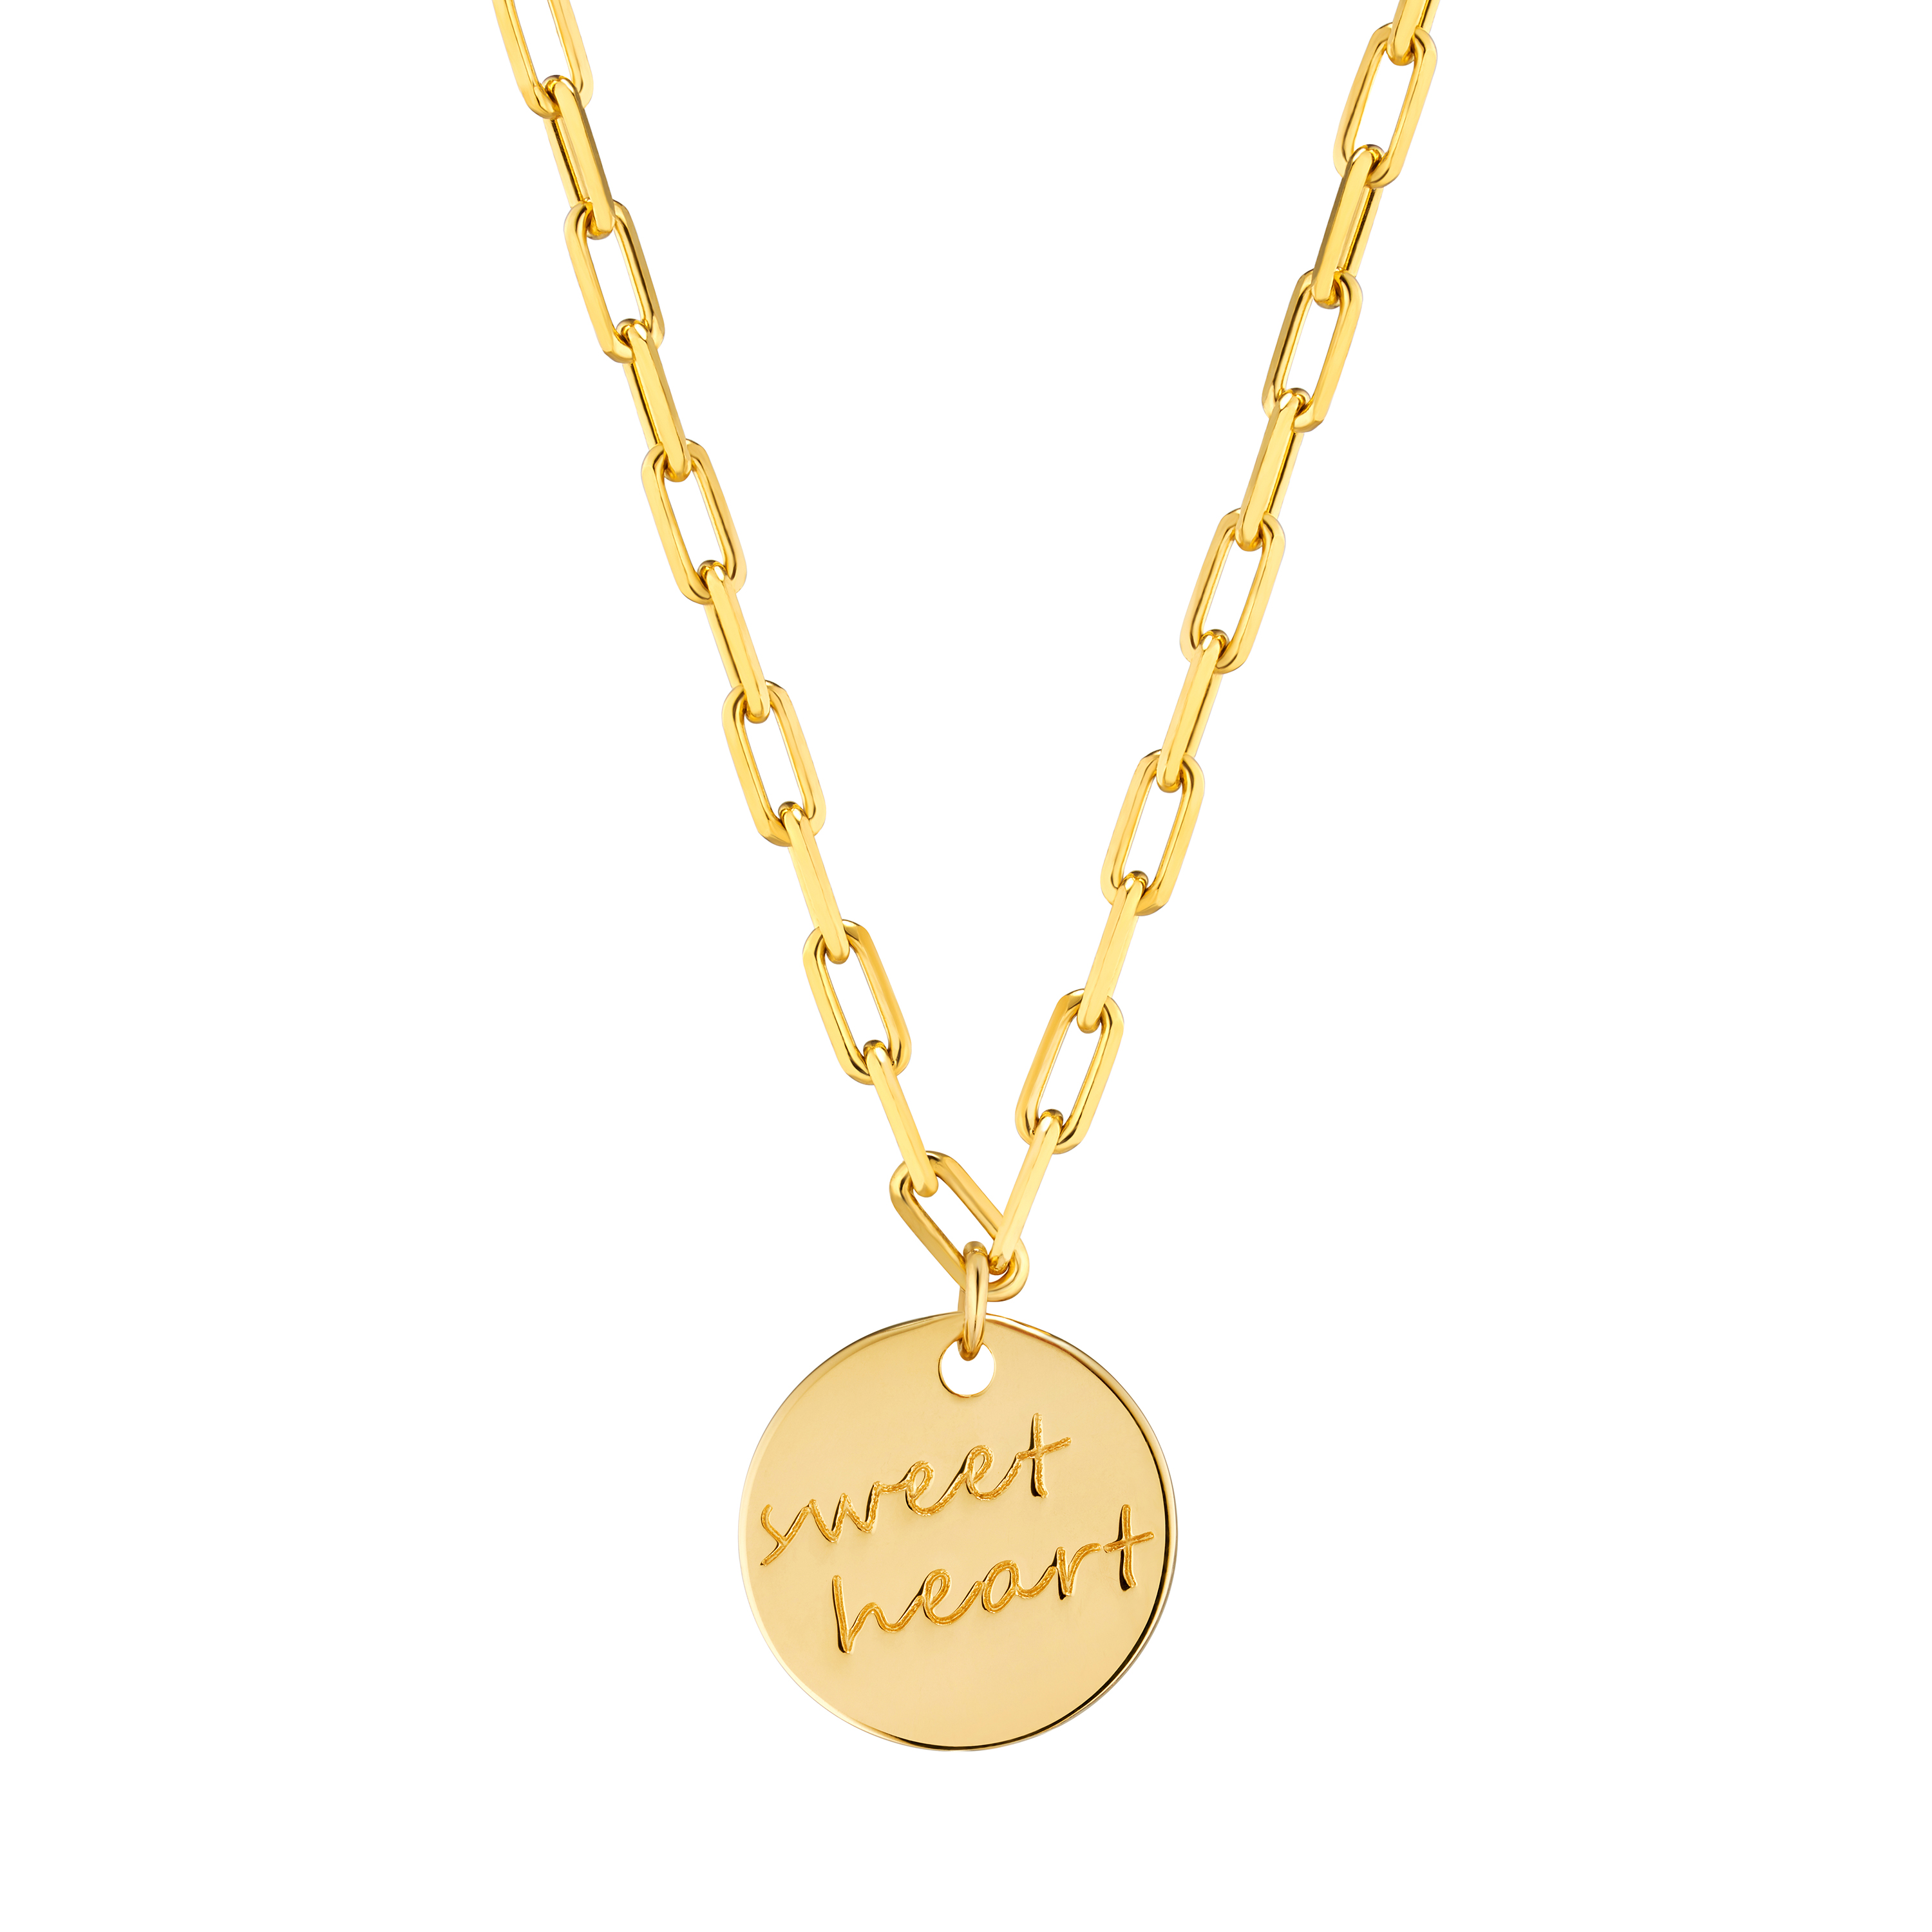 Gold of Light and Shadow Sweet Heart Necklace